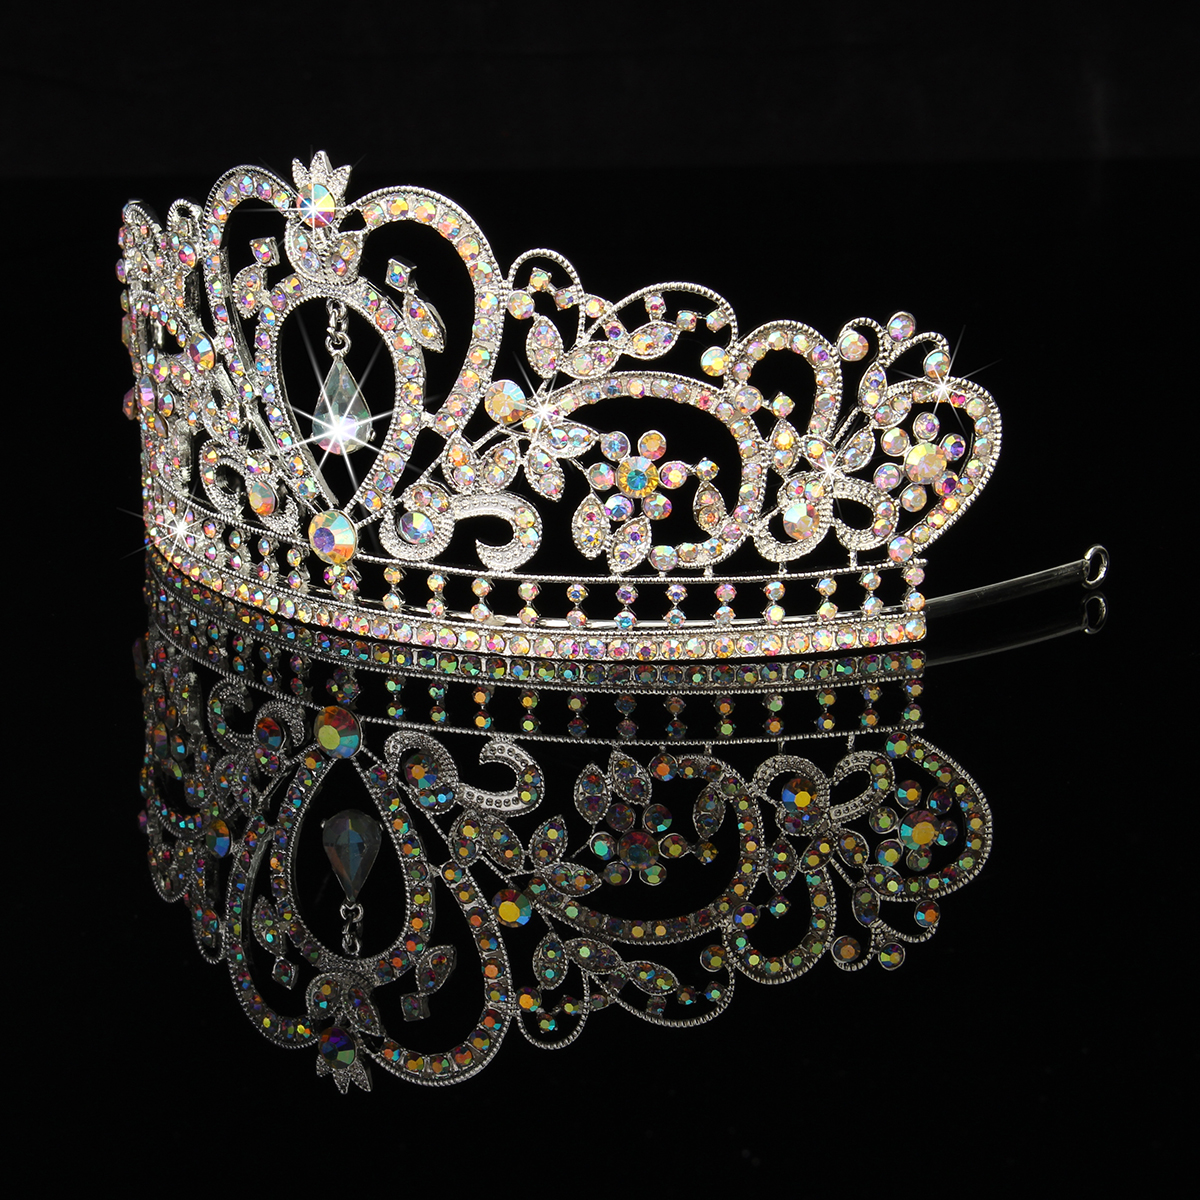 Bride Rhinestone Crystal Wedding Tiara Crown Prom Pageant Princess Crowns Bridal Veil Headbrand